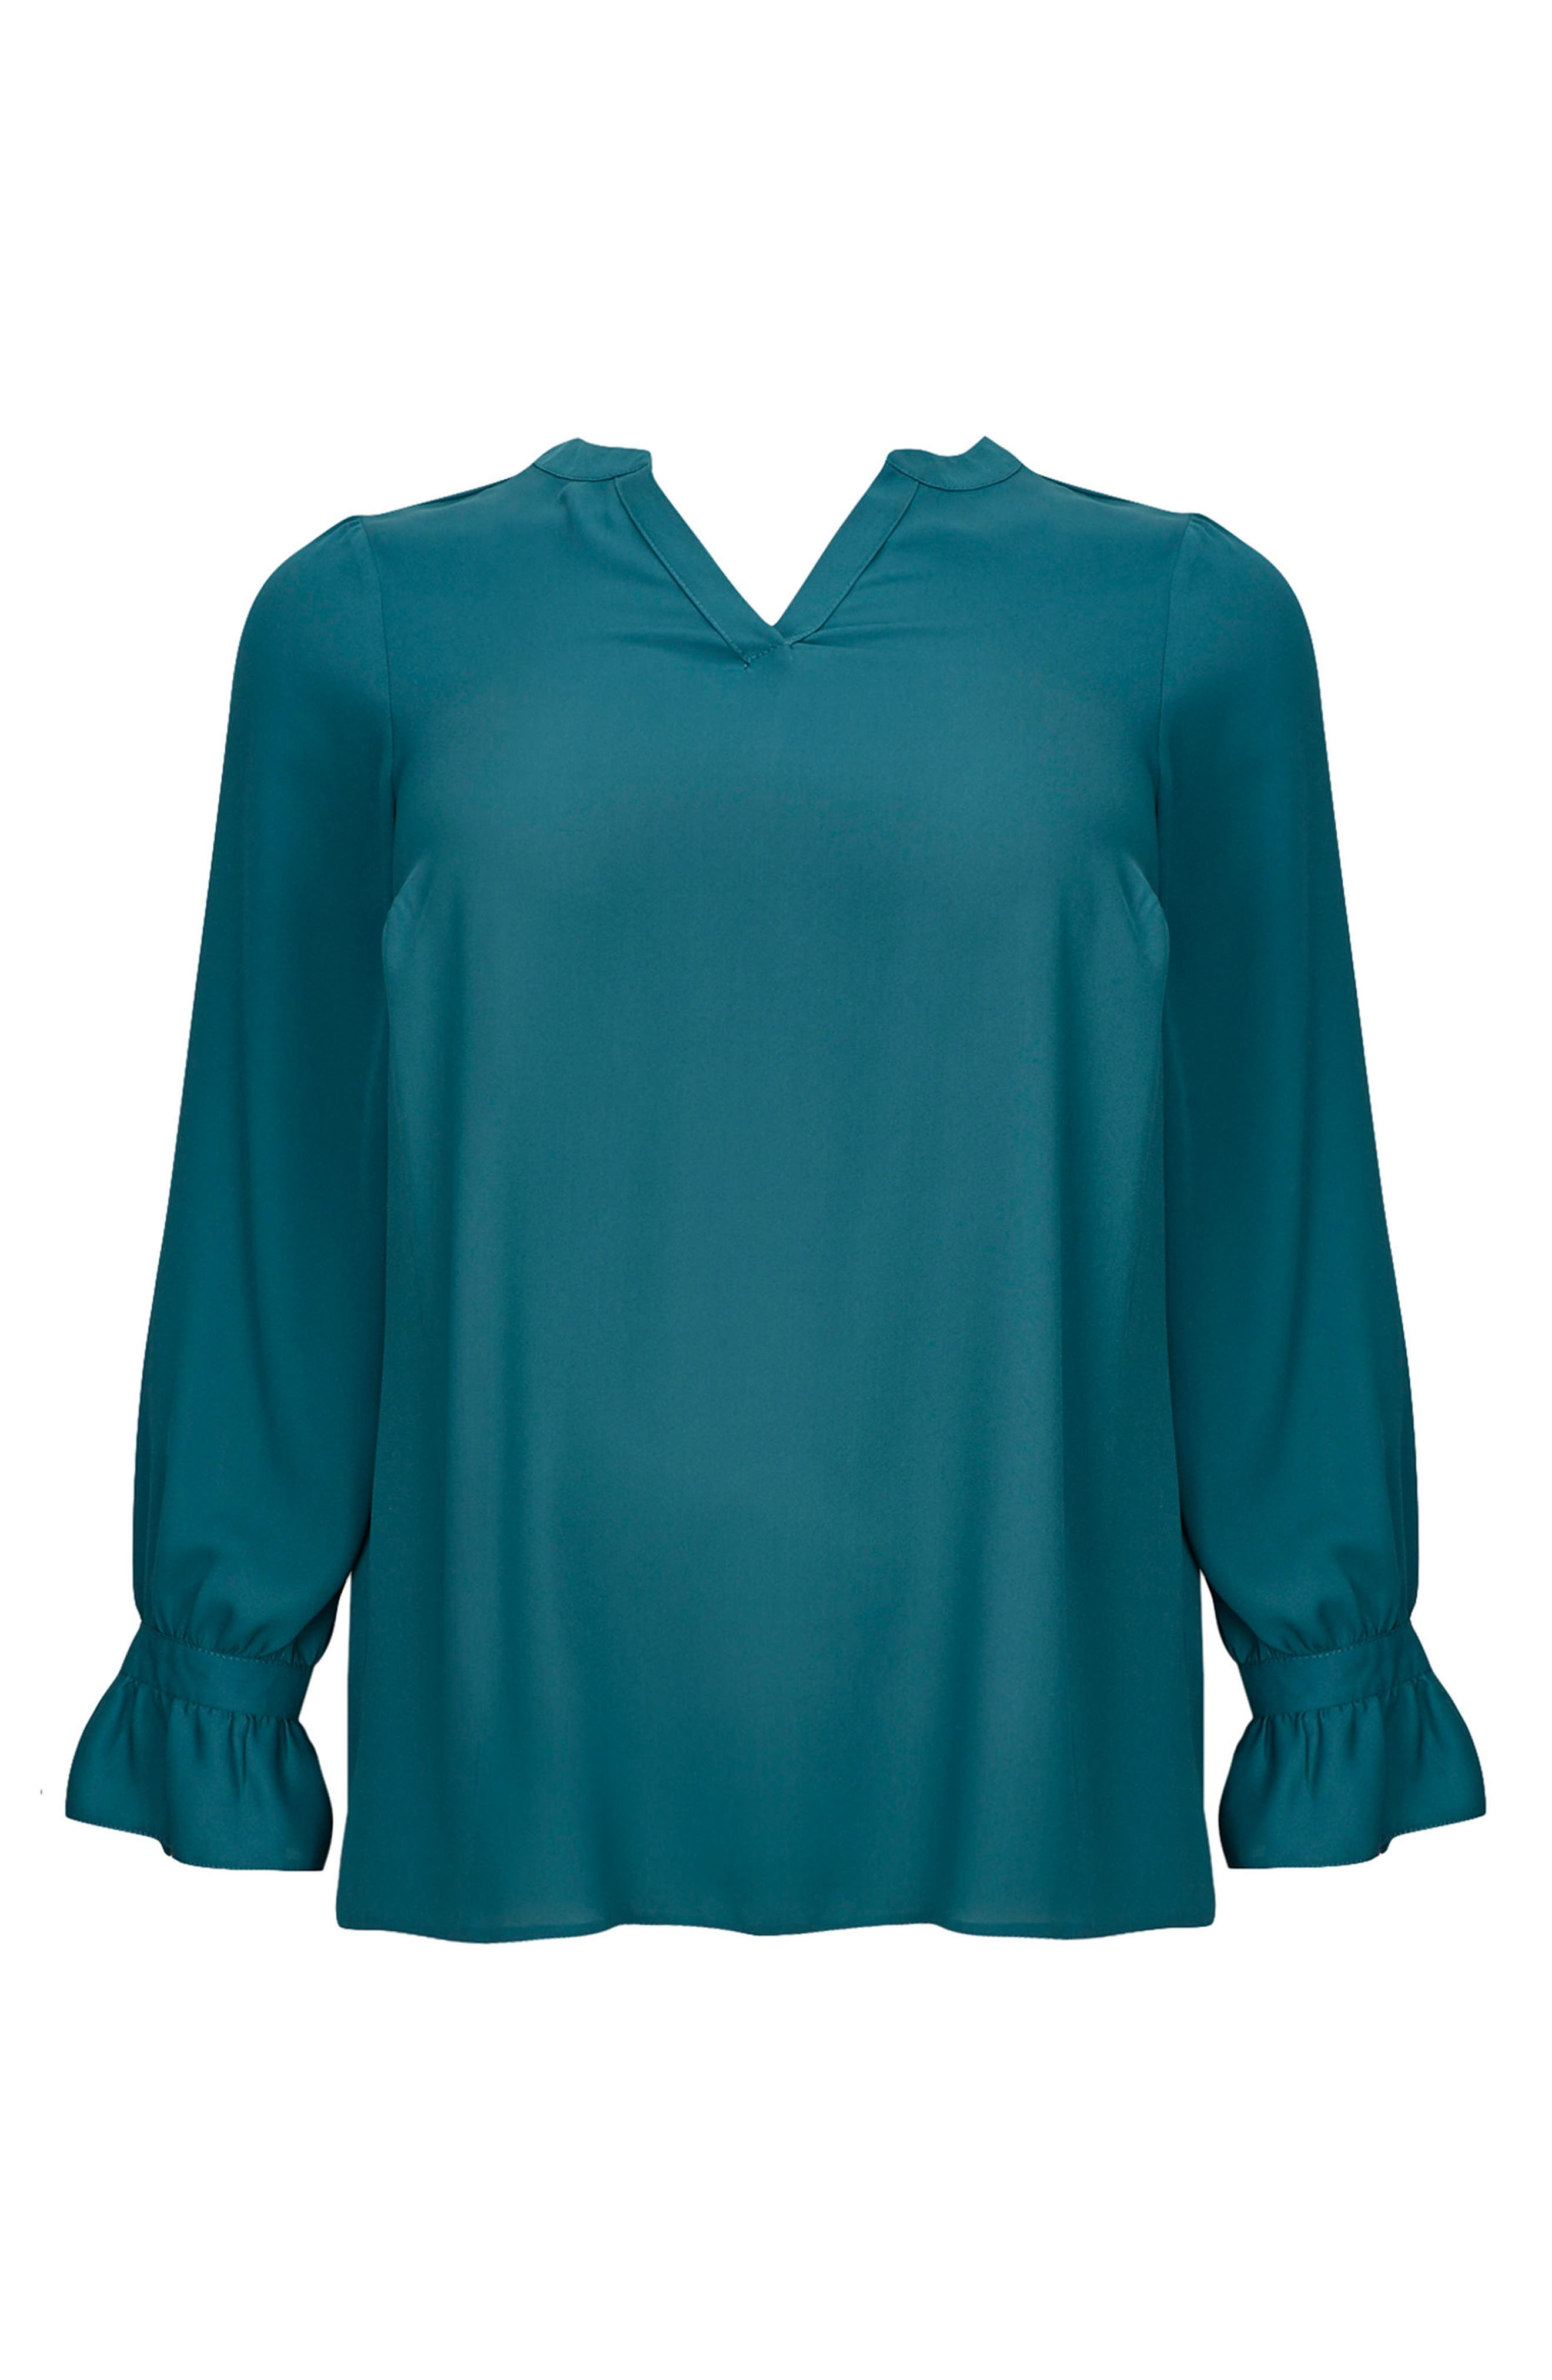 Tie Ruffle Cuff Top,                             Alternate thumbnail 4, color,                             Teal